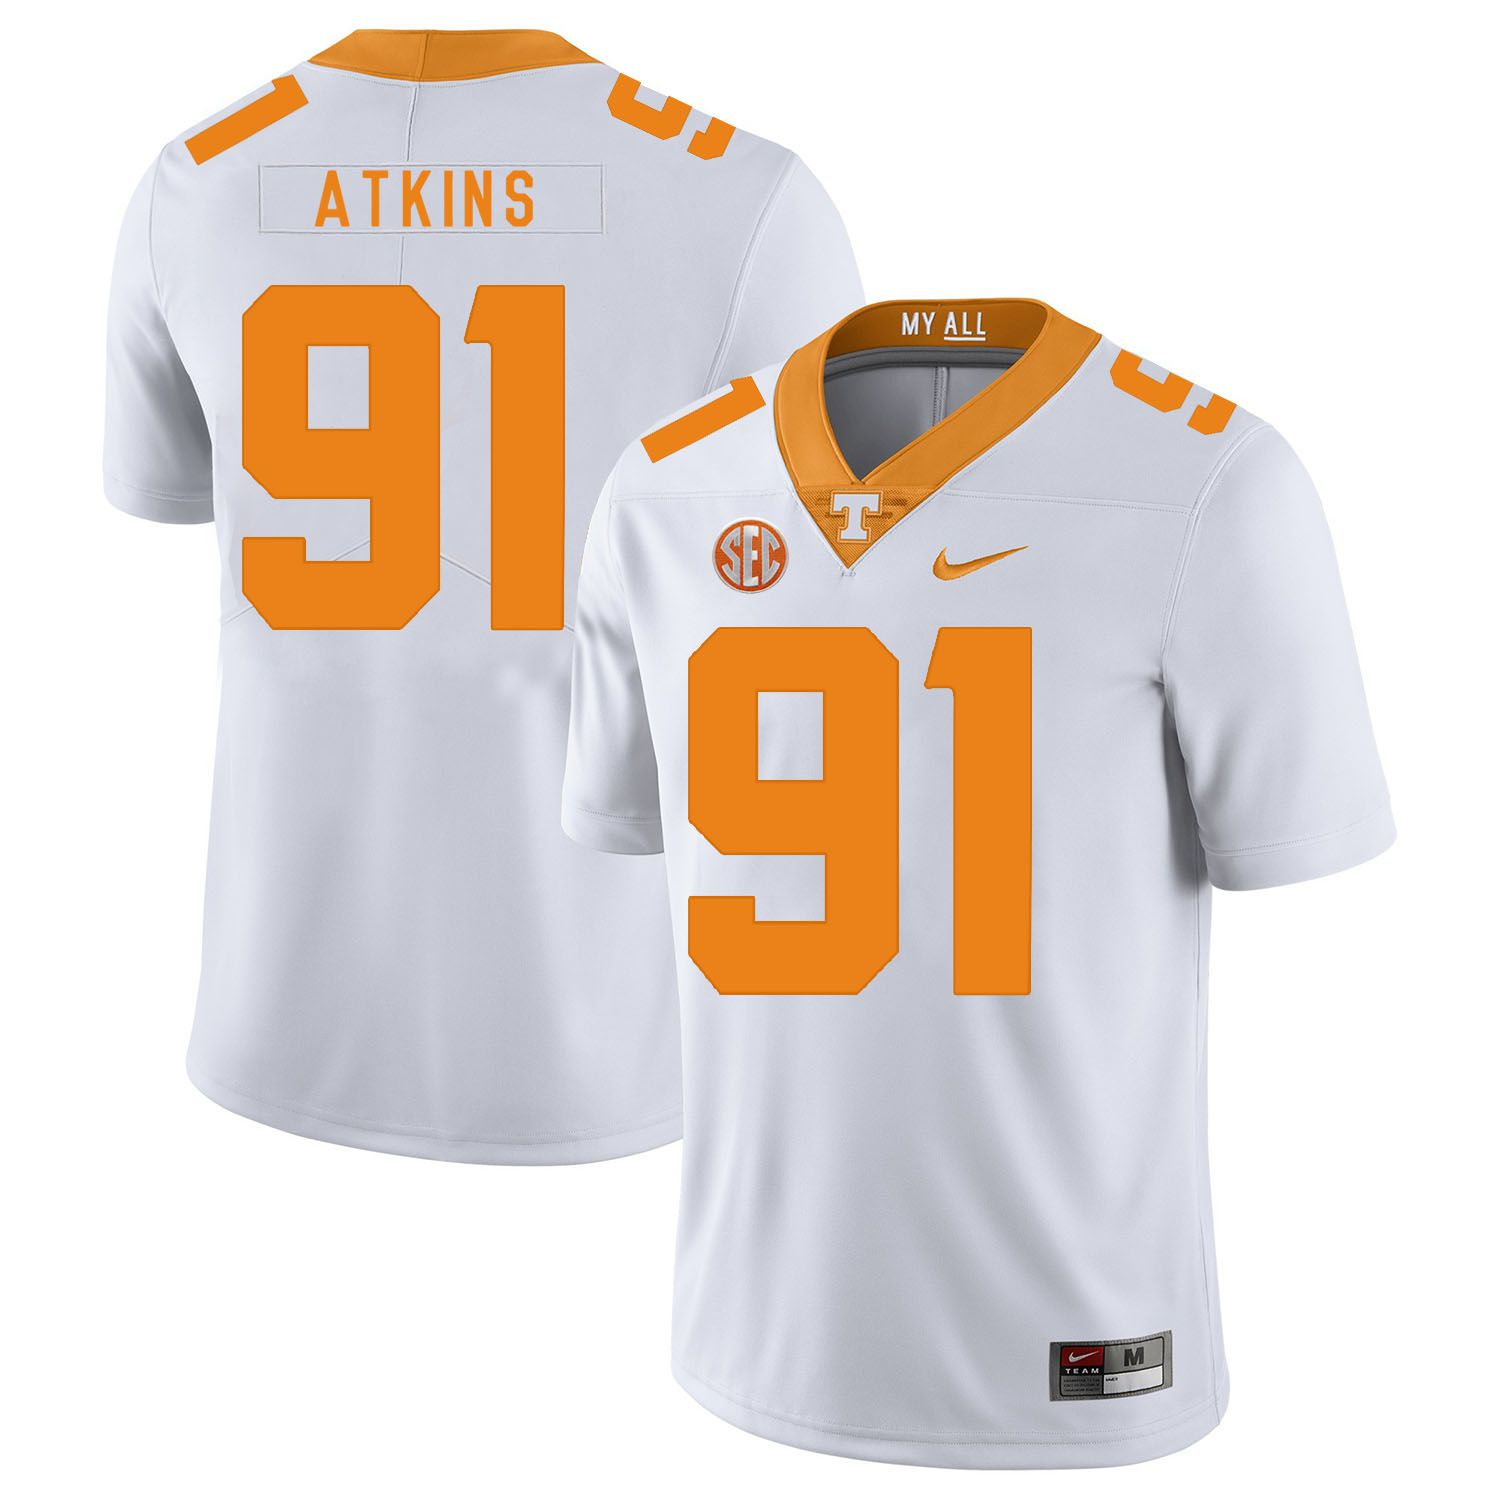 Men Tennessee Volunteers 91 Atkins White Customized NCAA Jerseys